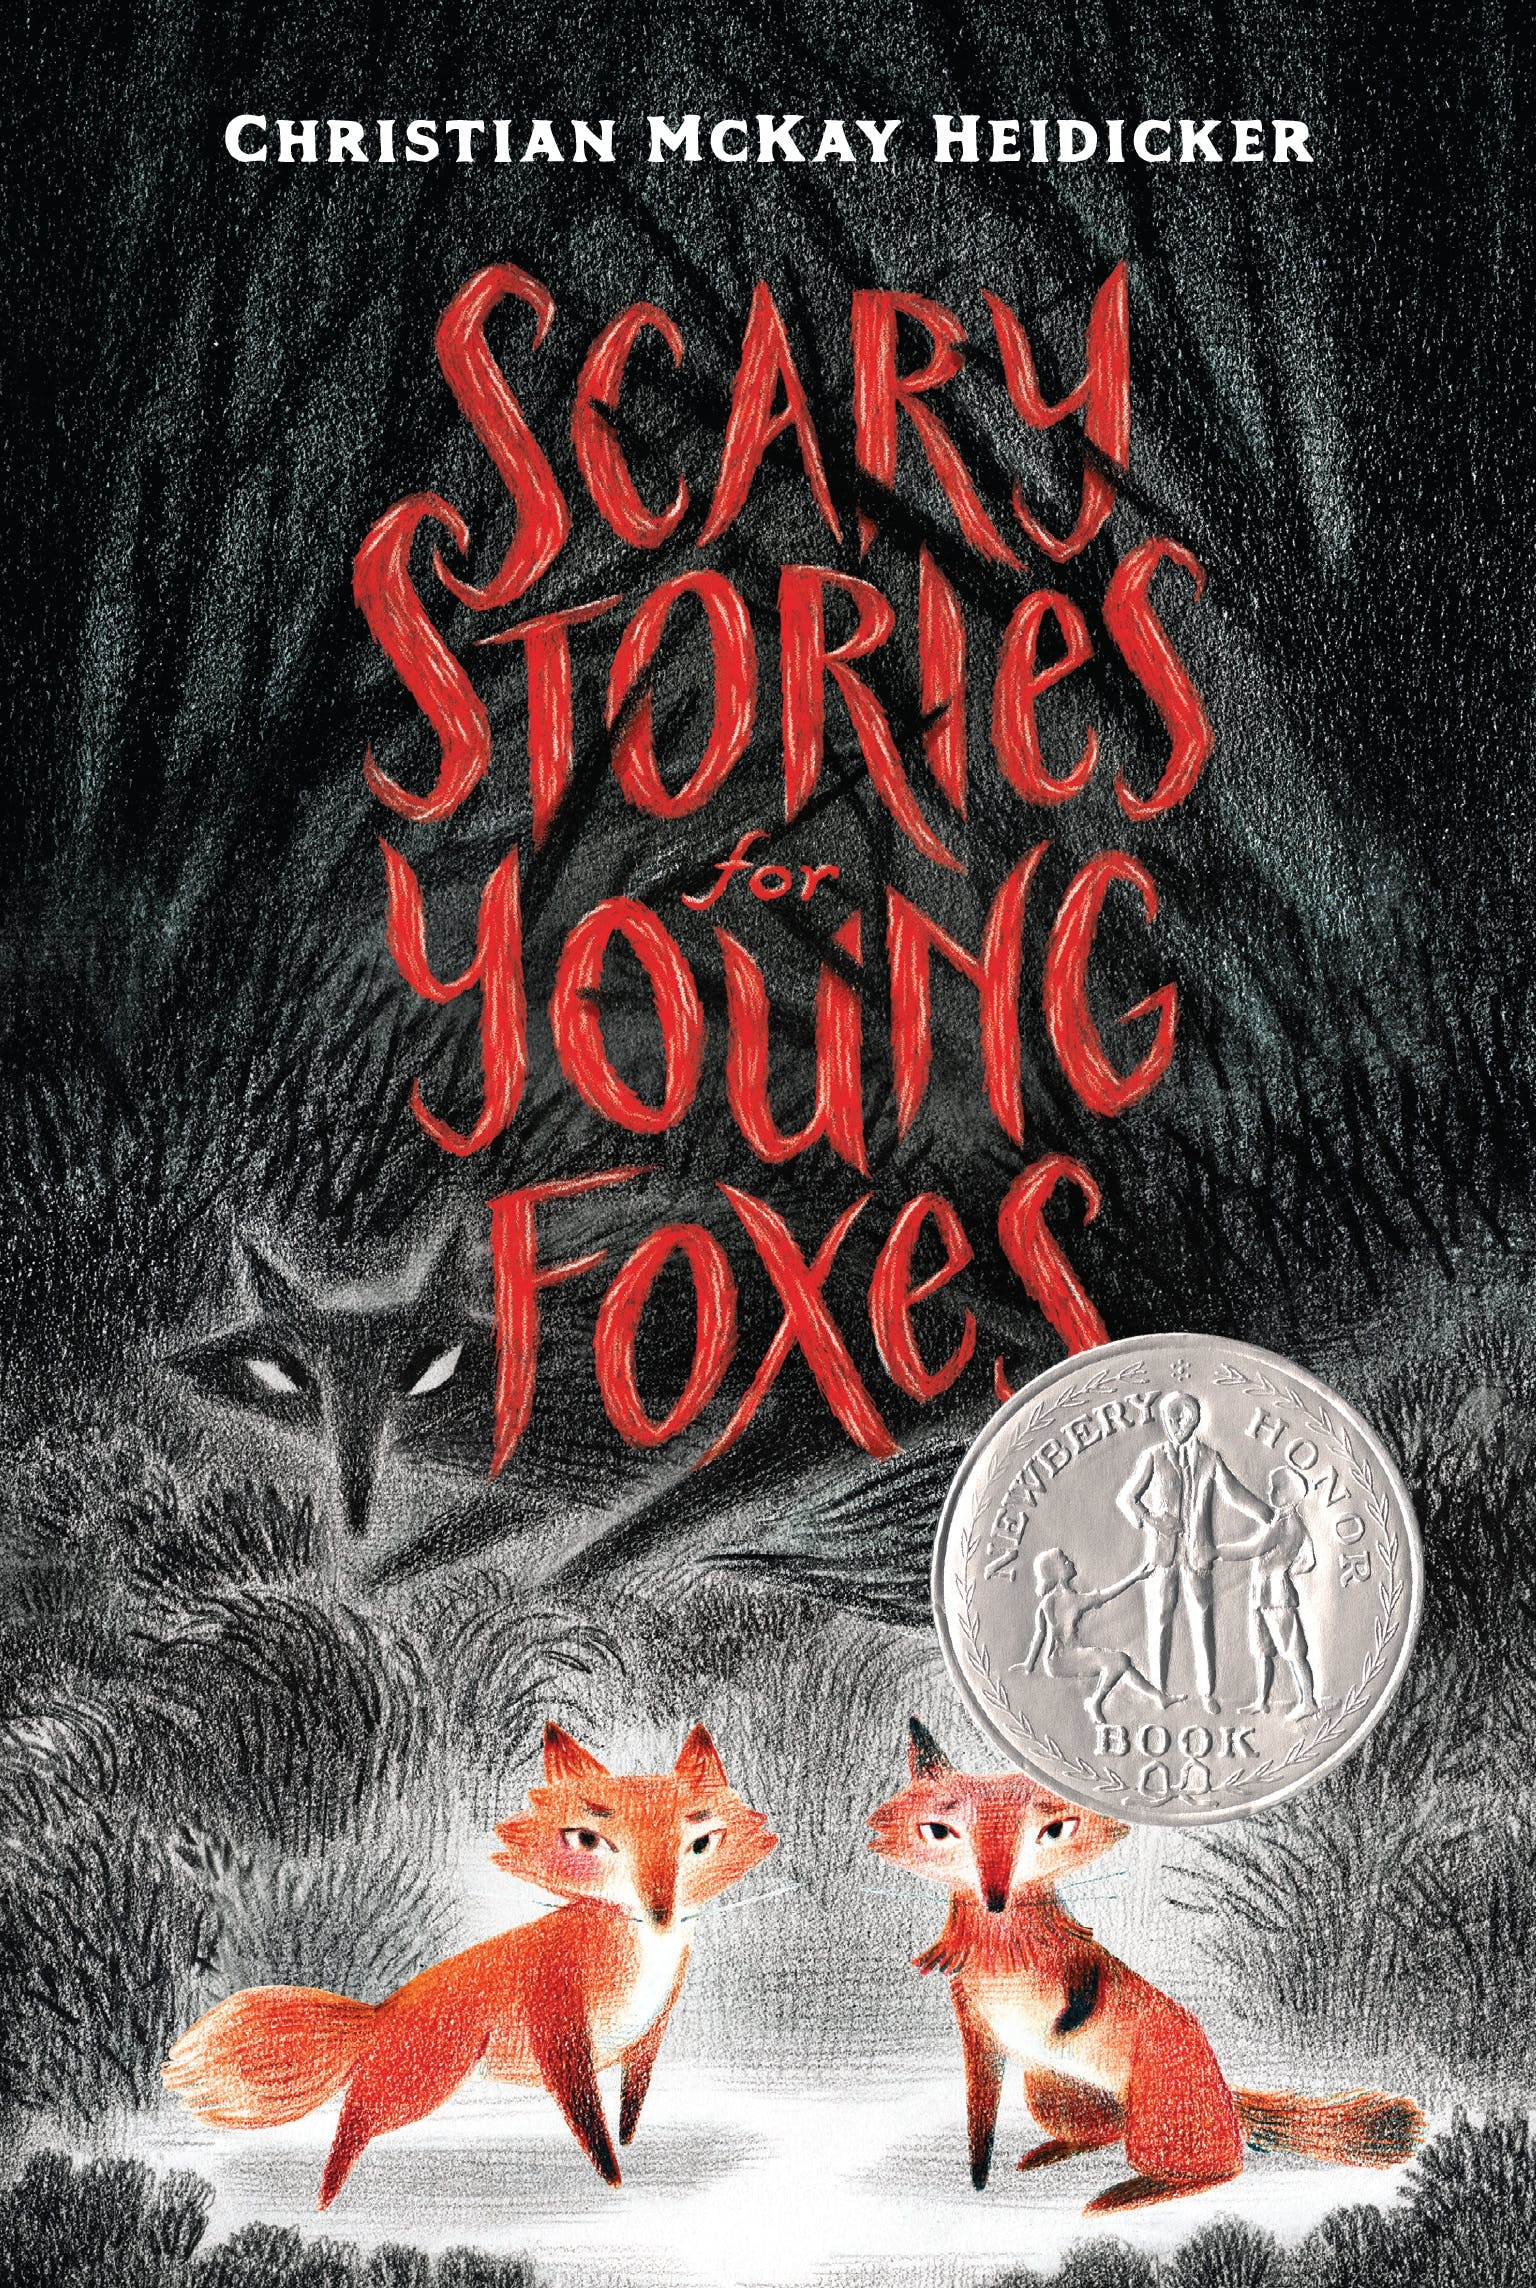 Image of Scary Stories for Young Foxes